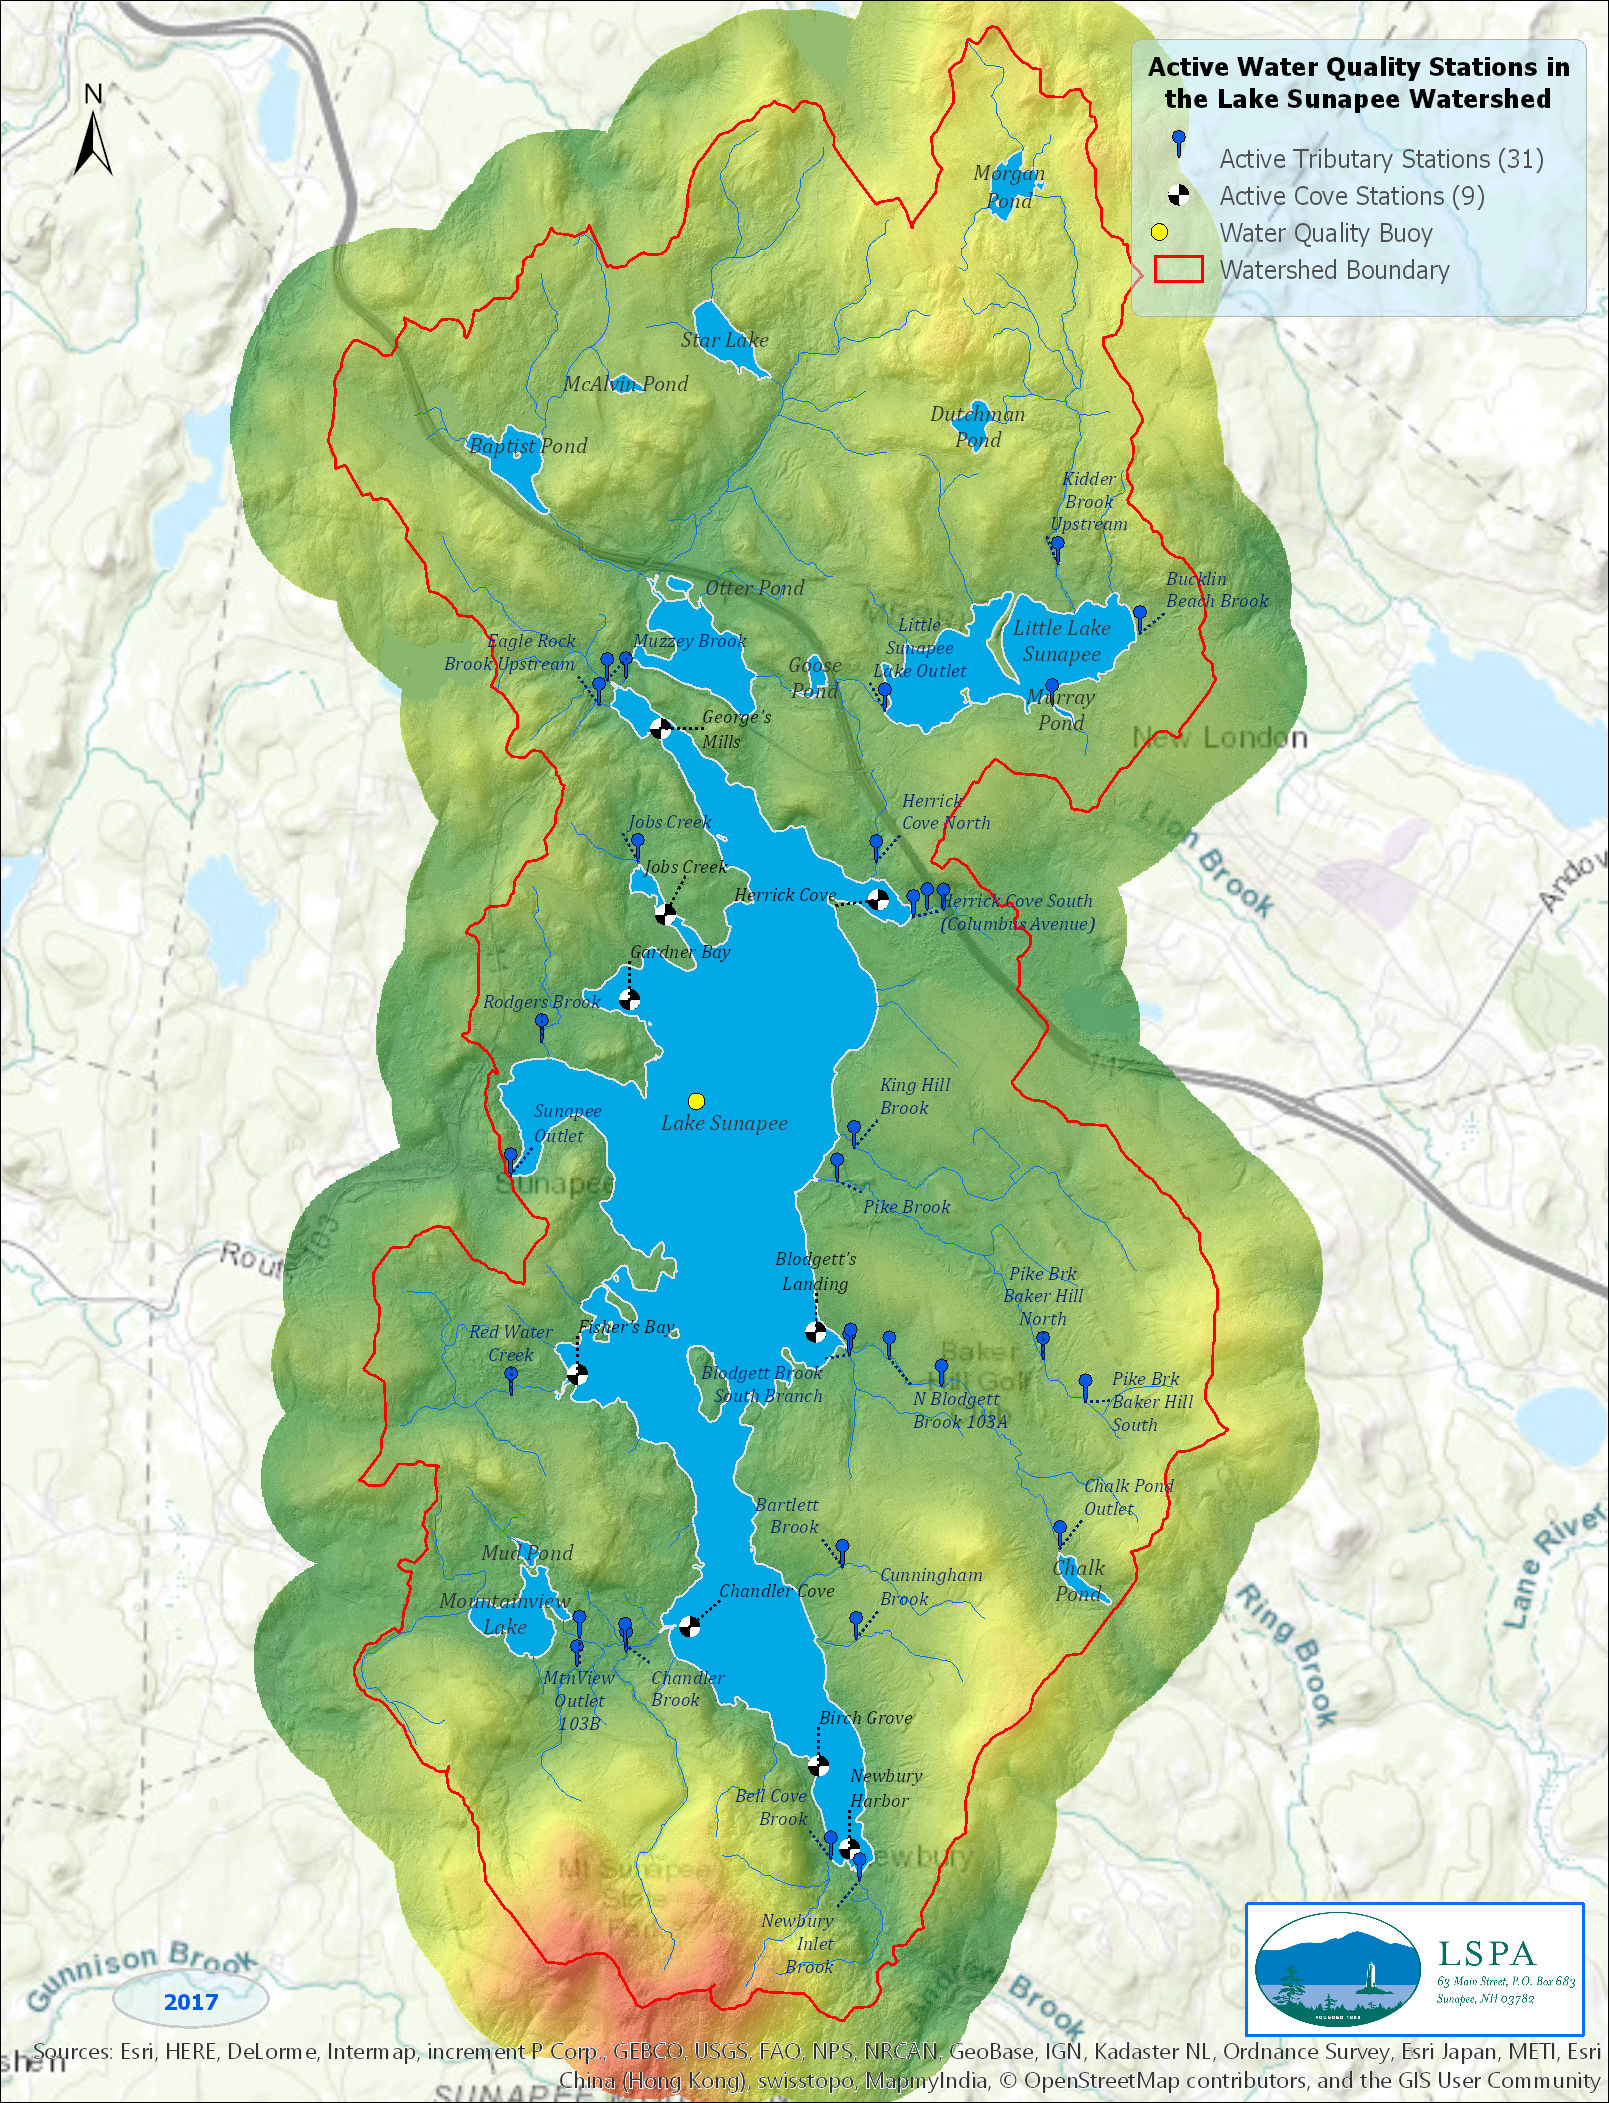 Active Water Quality Stations